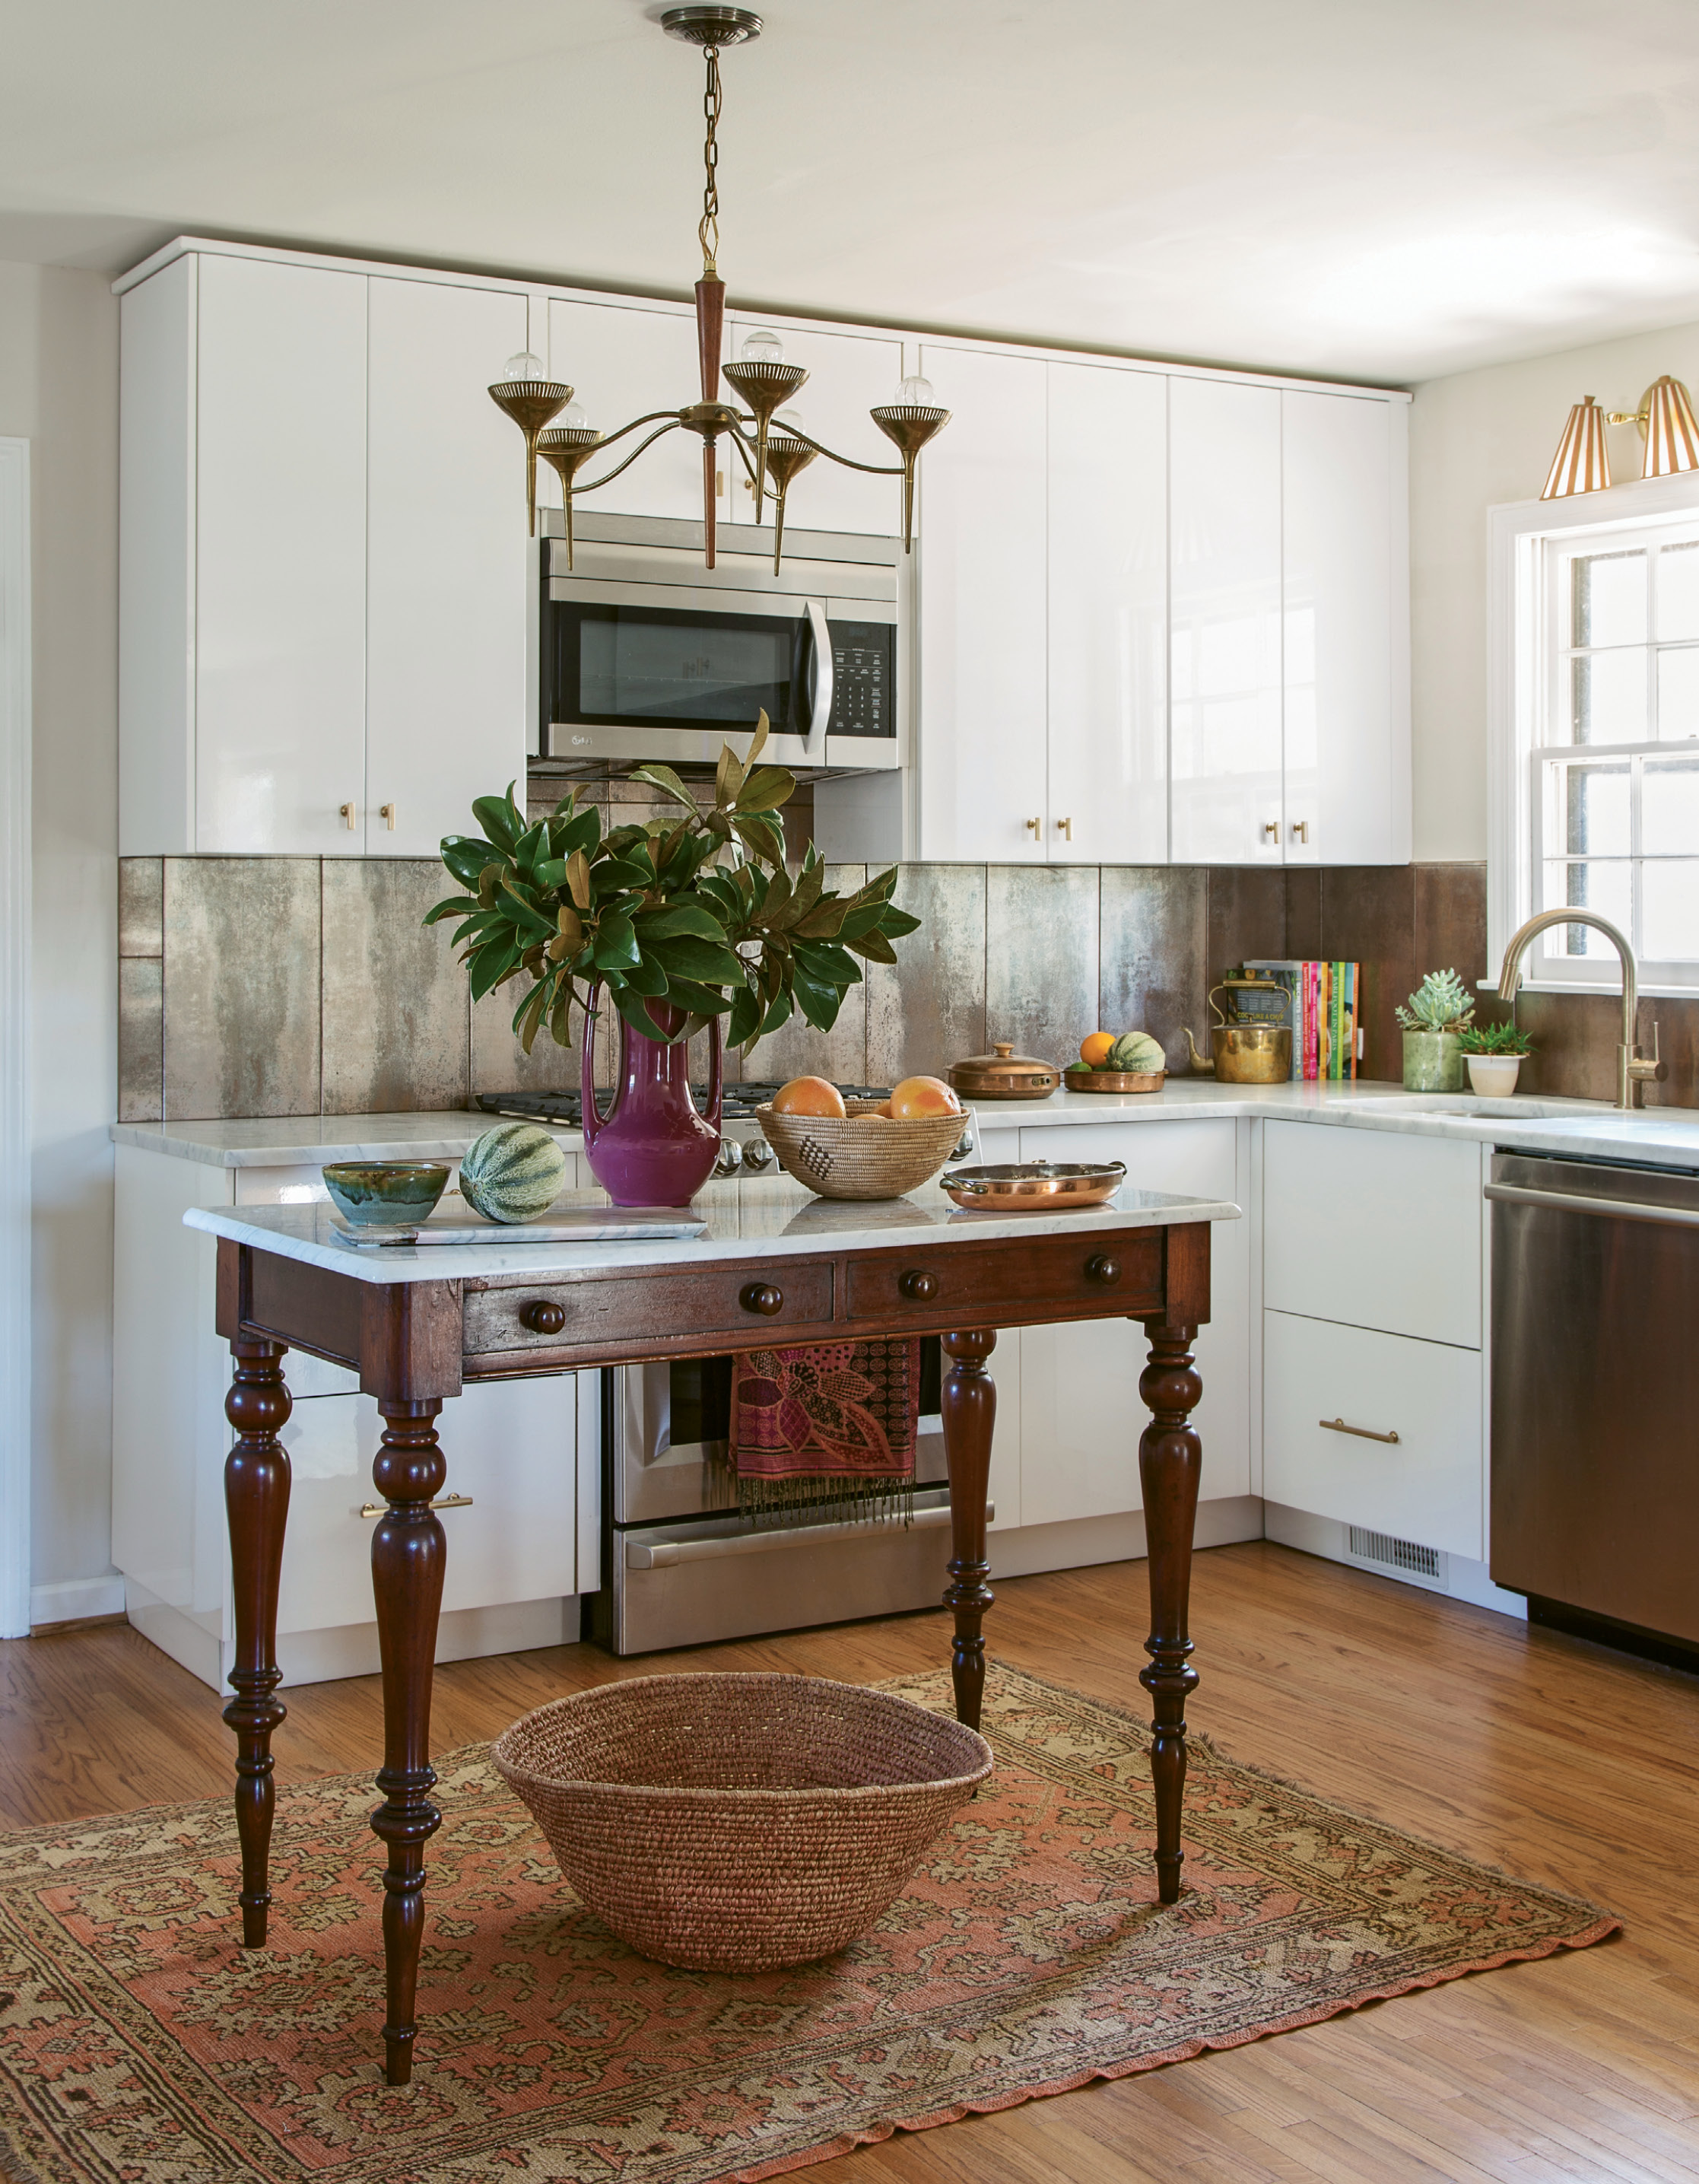 FRESH TAKE: High-gloss cabinets and a cool coppery backsplash help modernize the retro kitchen. But antique pieces—such as a brass-and-wood mid-century light fixture and a marble-top table reimagined as an island—lend vintage charm that's cohesive with the rest of the abode.